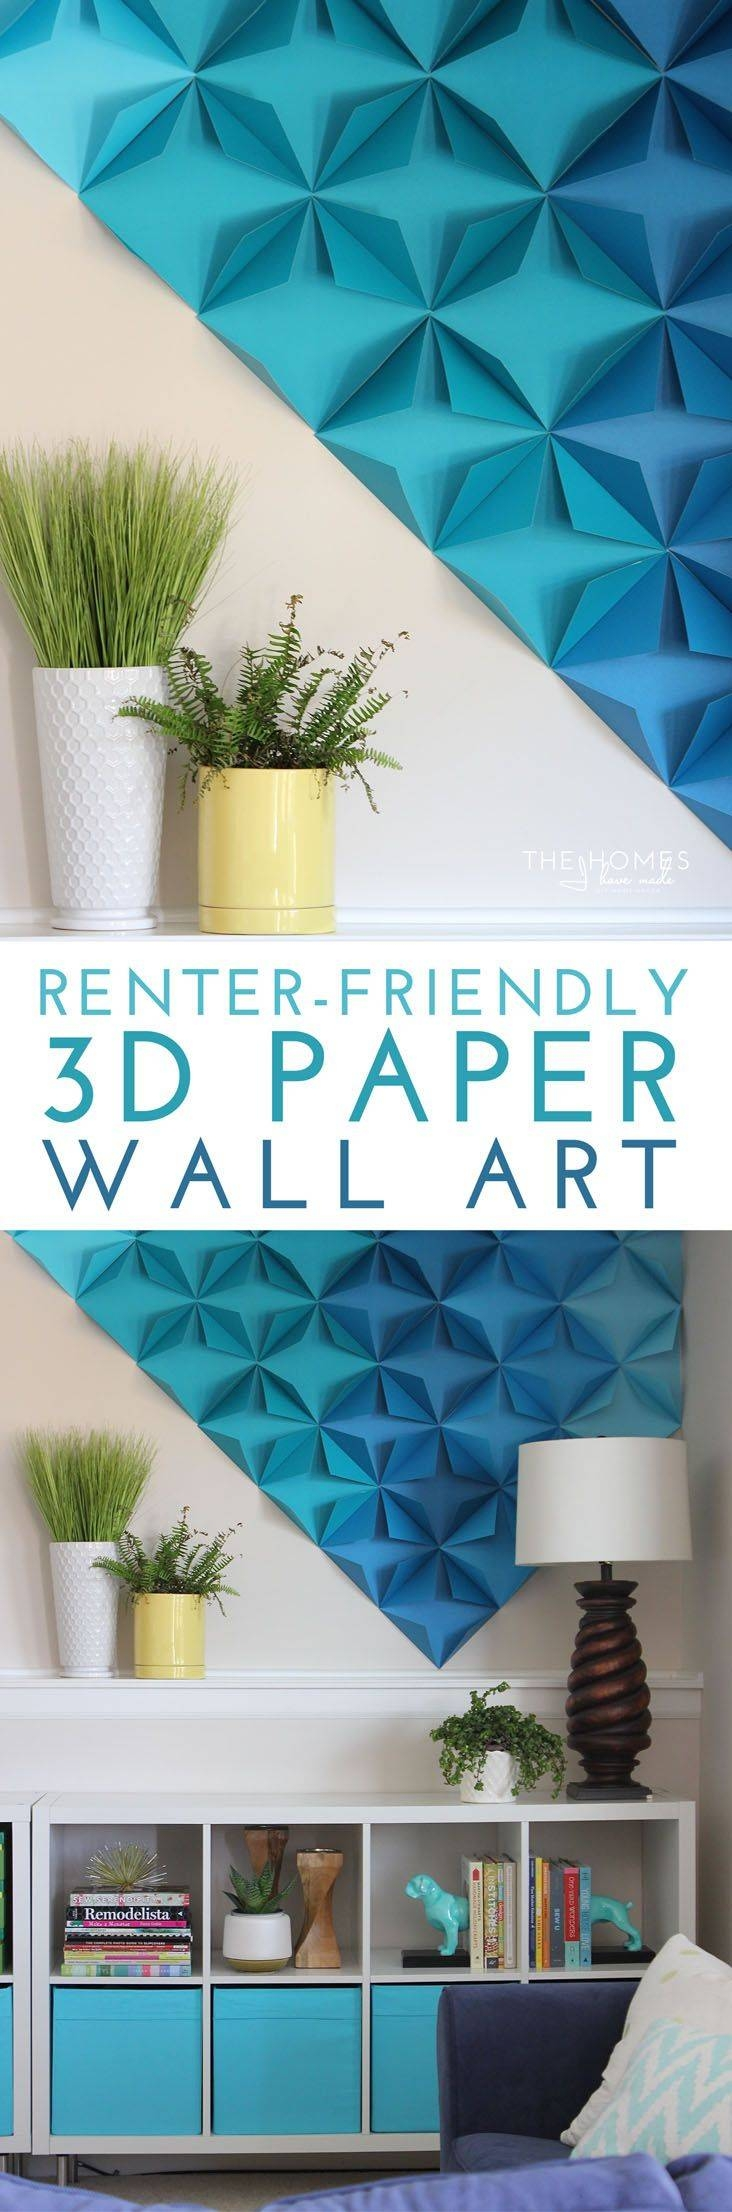 25+ Unique 3D Wall Art Ideas On Pinterest | Butterfly Wall, Diy In Most Popular Pinterest Diy Wall Art (View 1 of 25)